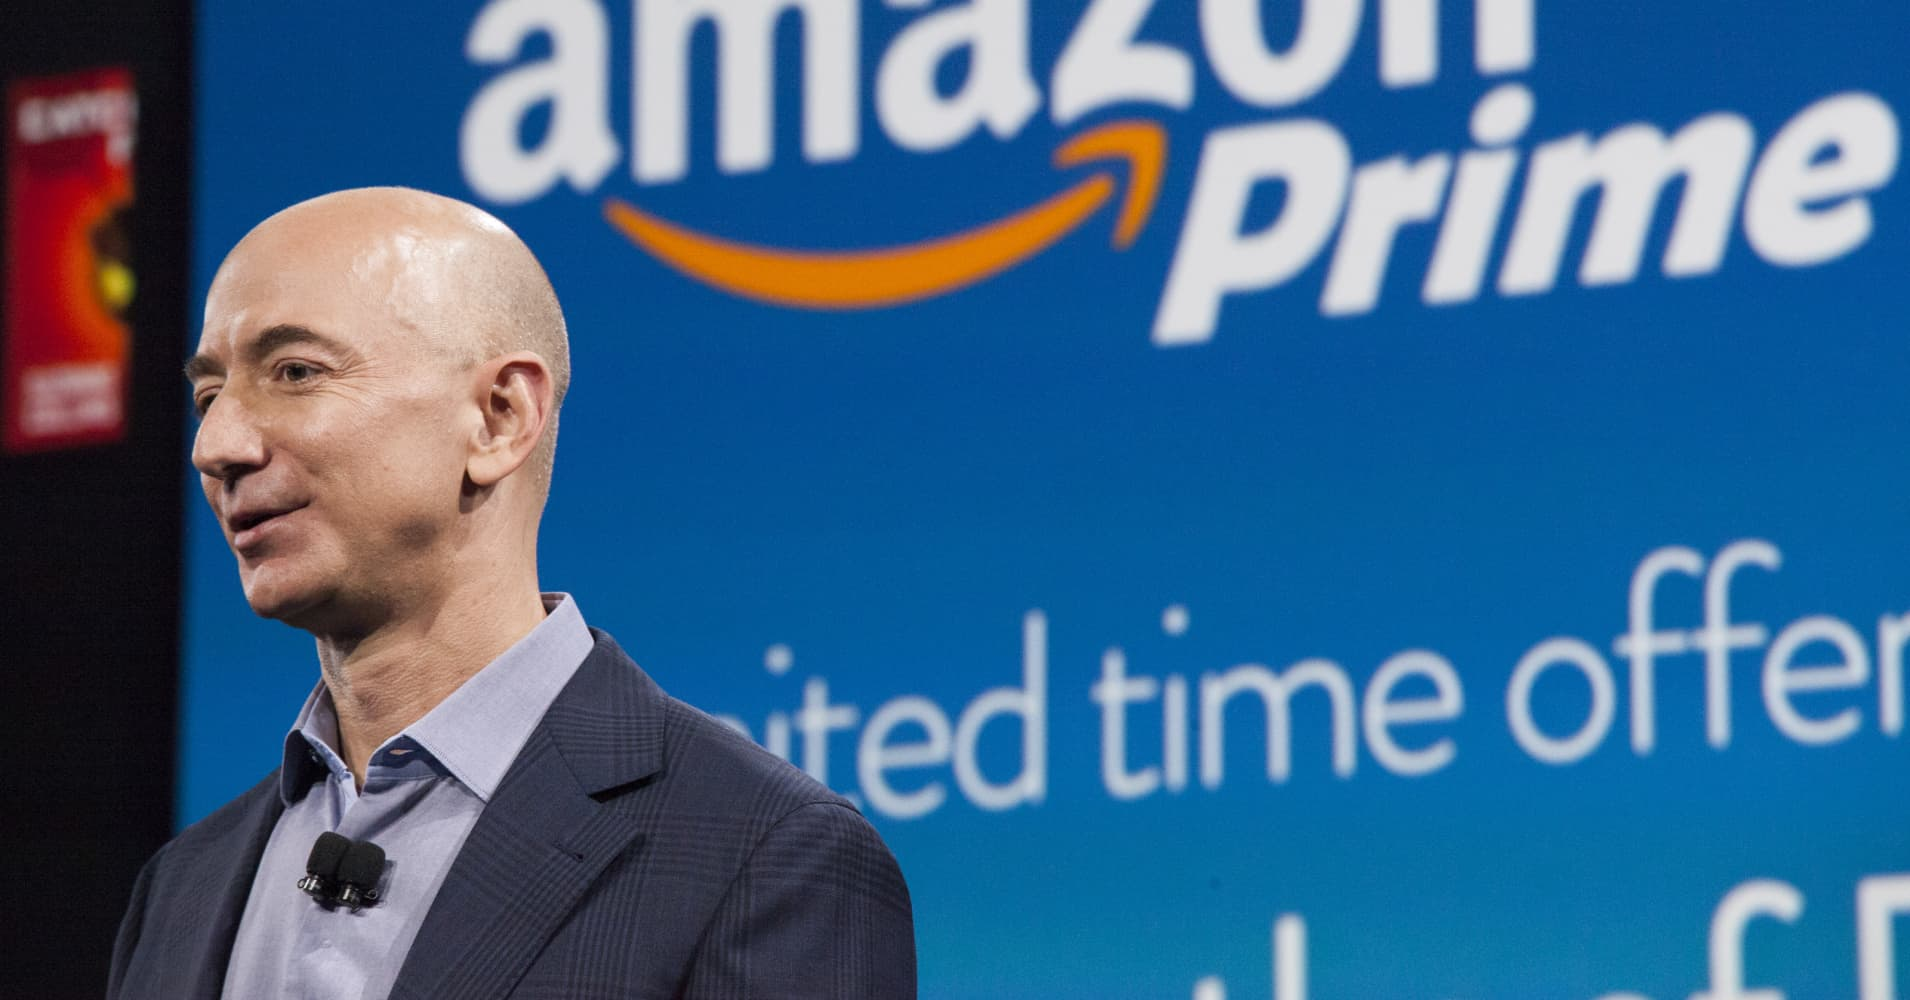 Amazon's Jeff Bezos surpasses $100 billion net worth